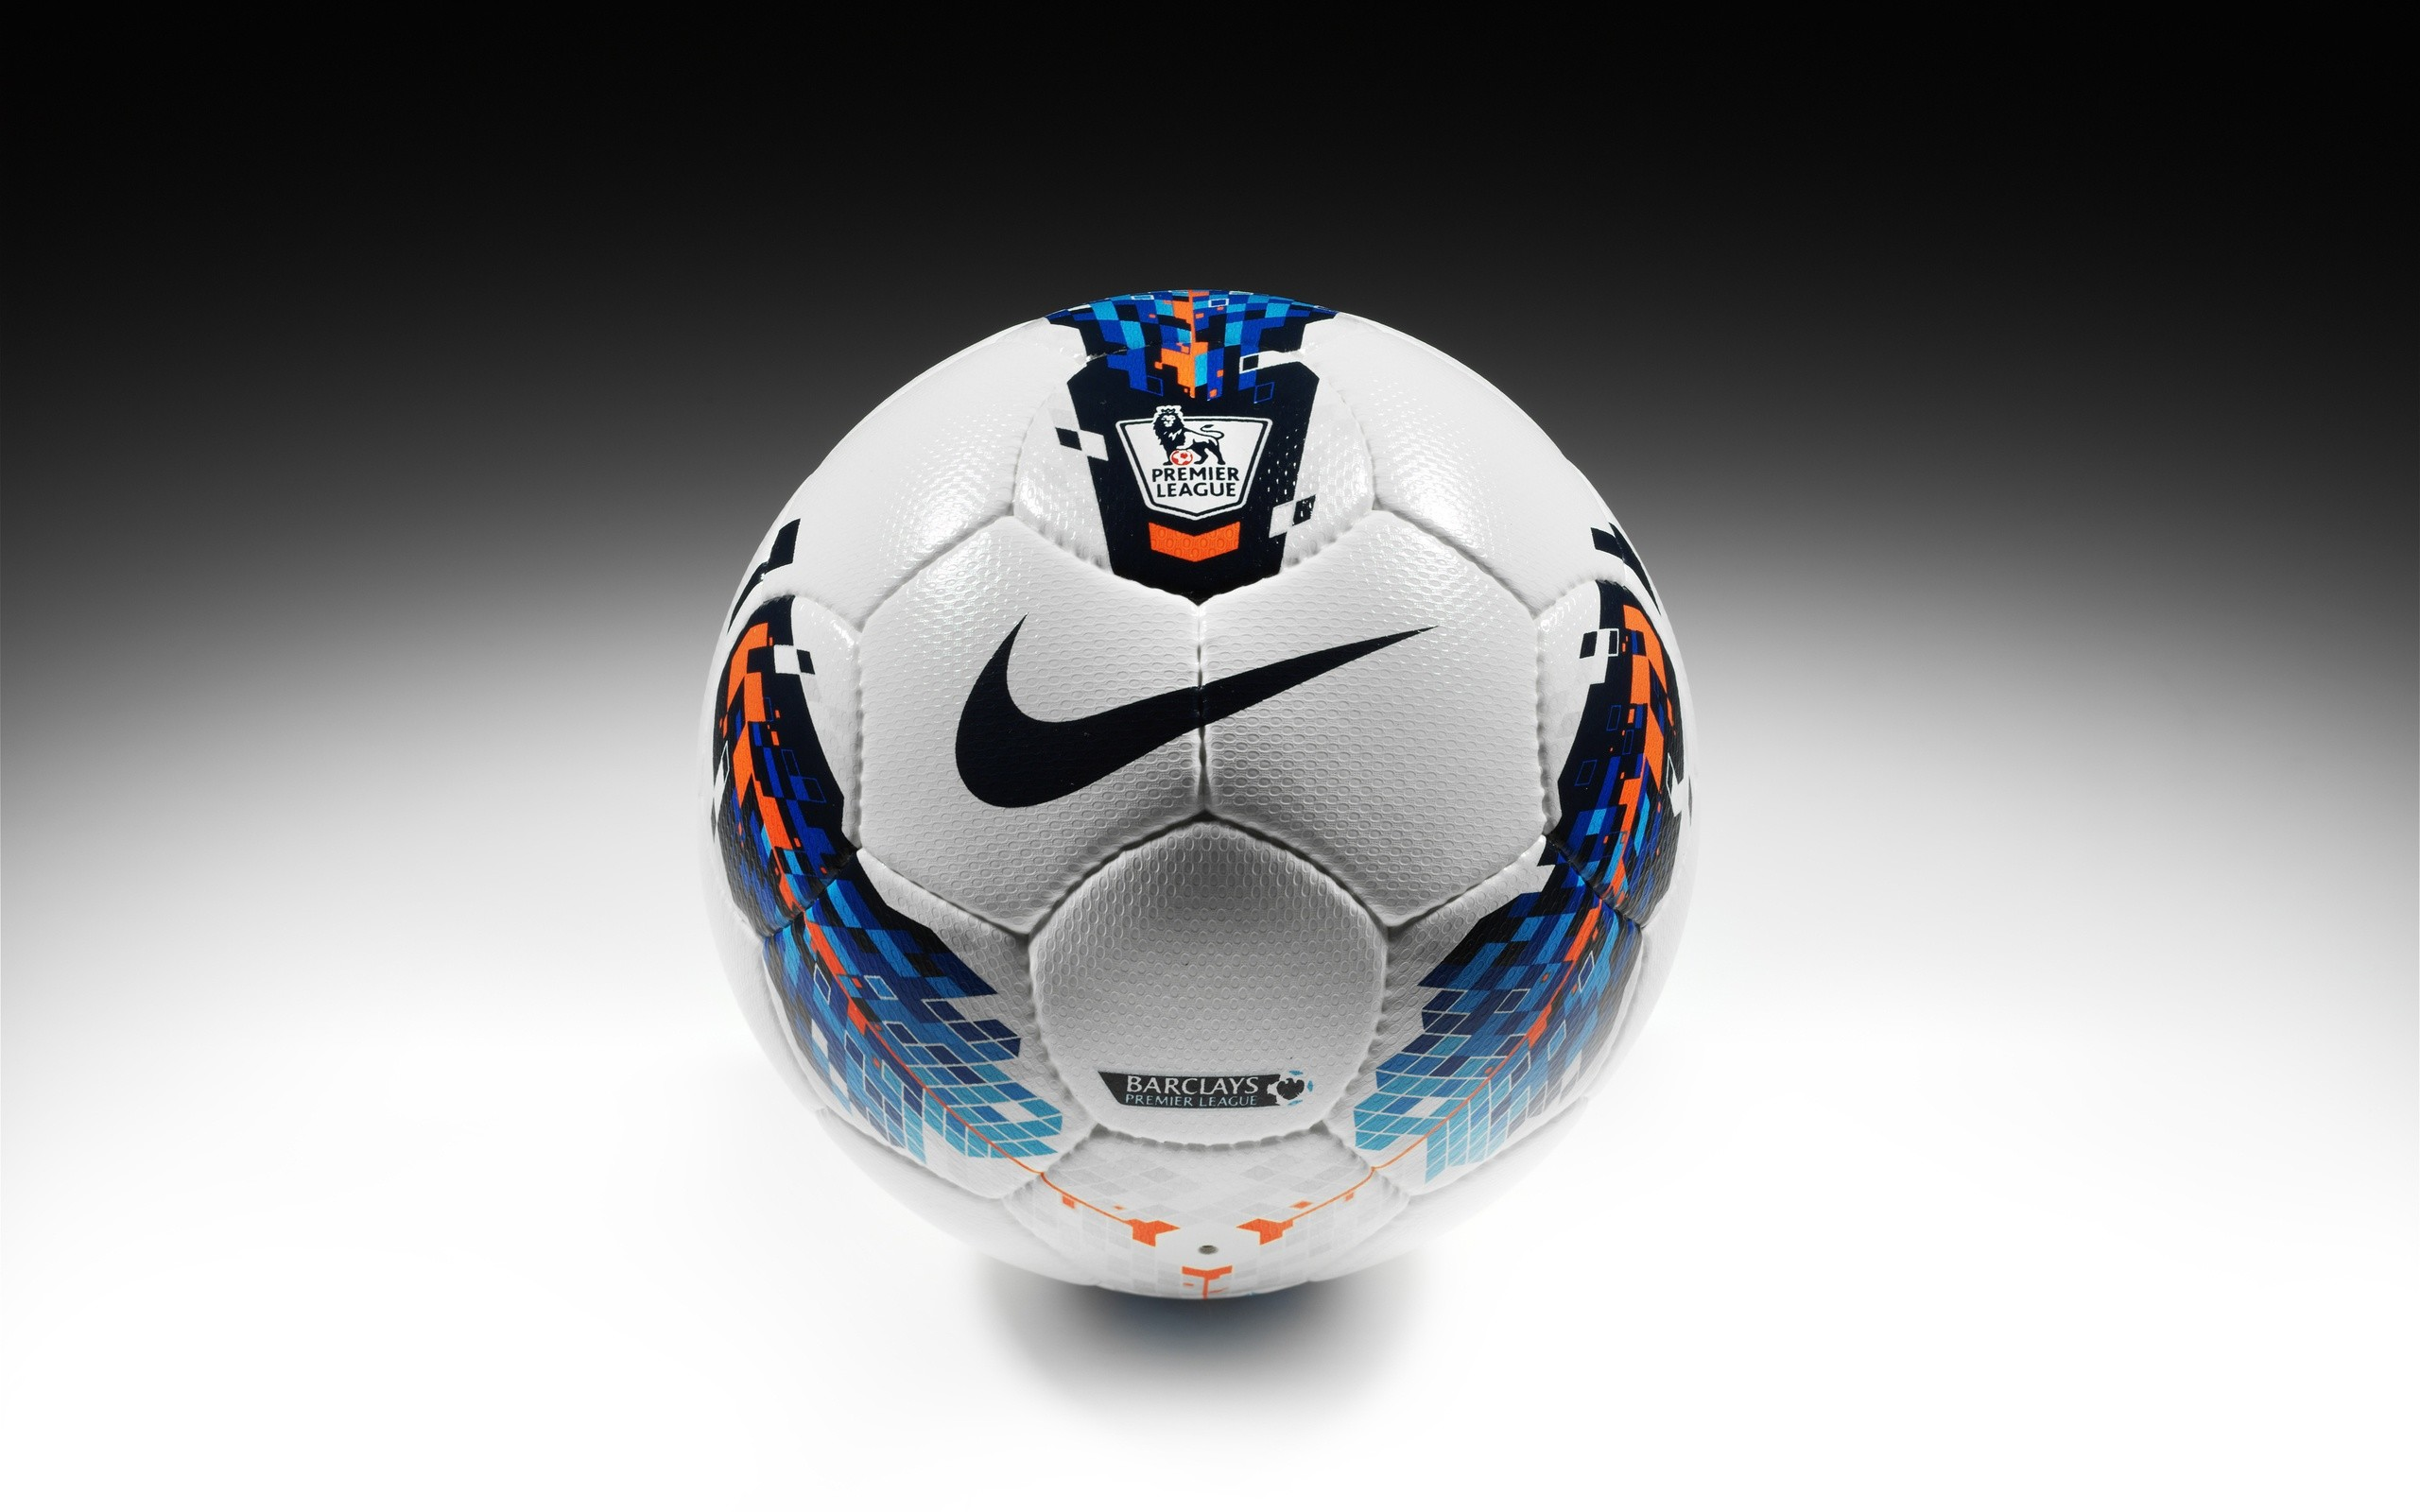 2560x1600 Nike Soccer Ball Wallpaper - Soccer Walls